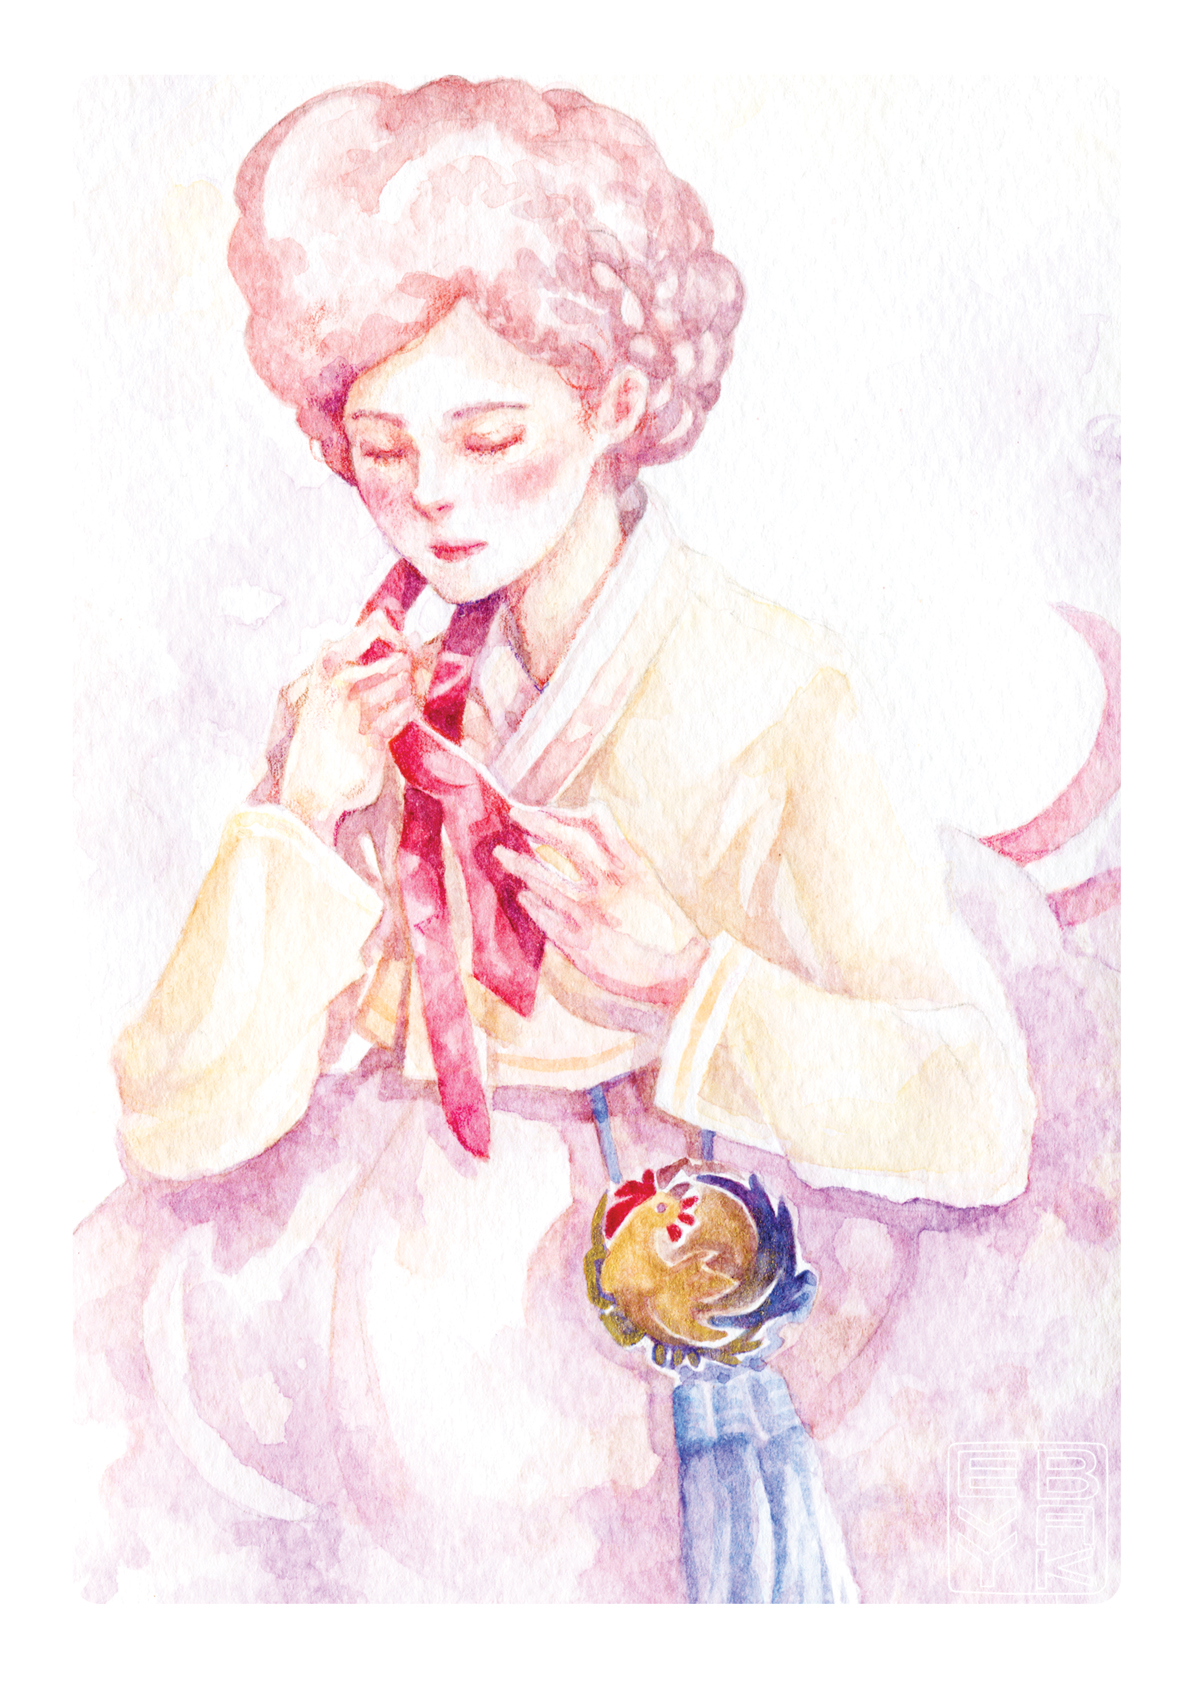 Year of the Rooster - Korean and Chinese New Year, Zodiac Sign of the Rooster, Gisaeng inspired Hanbok watercolor illustration, with poster prints and postcard available on Etsy.